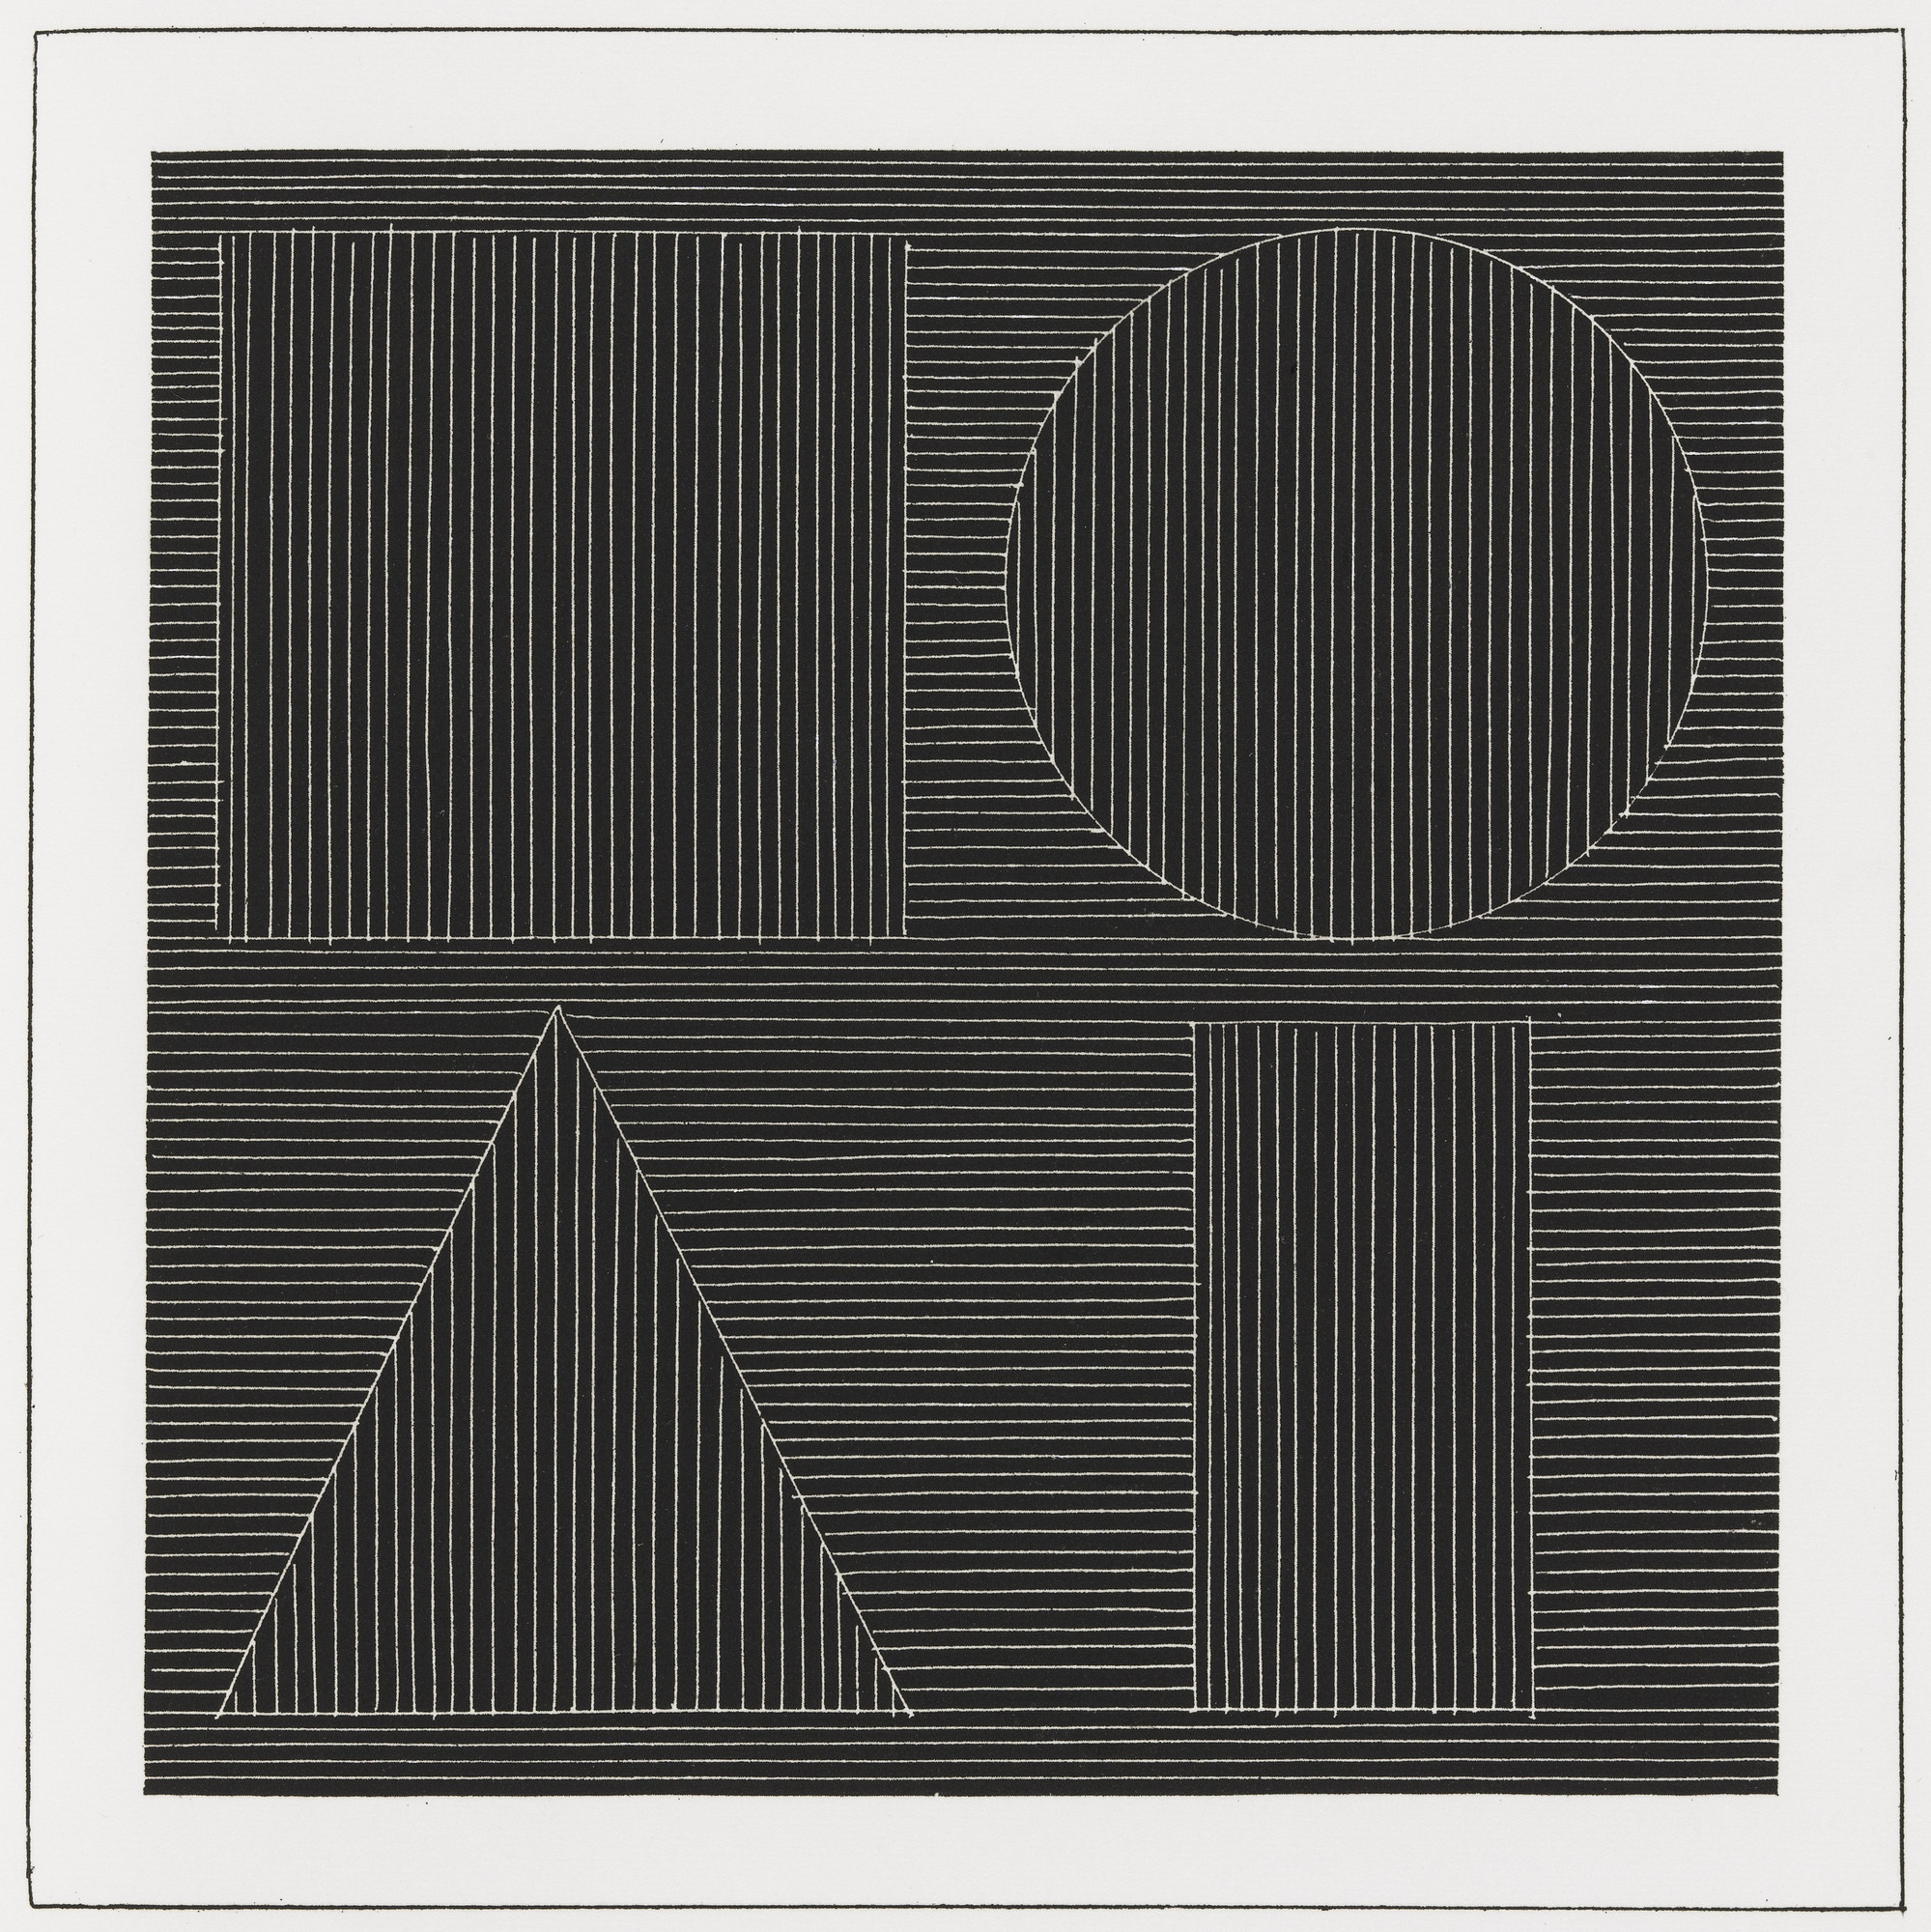 Sol LeWitt. Plate (folio 43) from Six Geometric Figures and All Their Combinations, Volume I. 1980